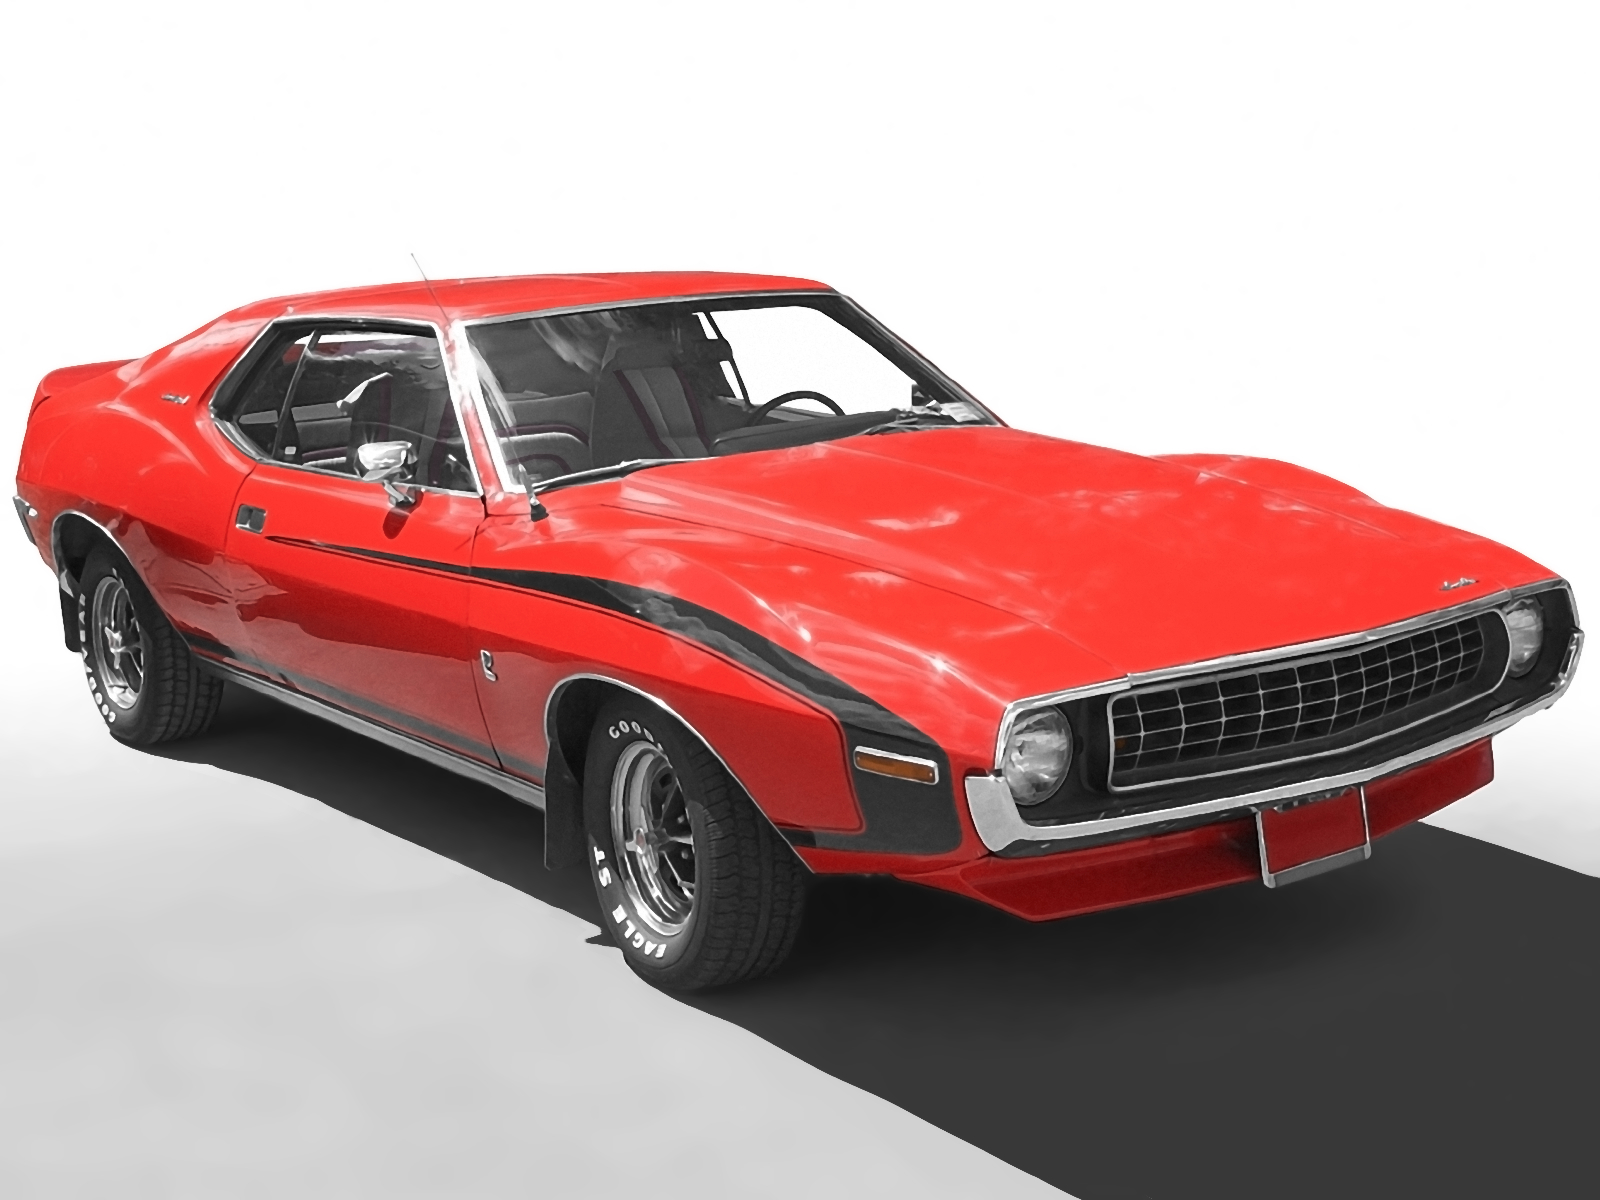 cars amx javelin red HD Wallpaper